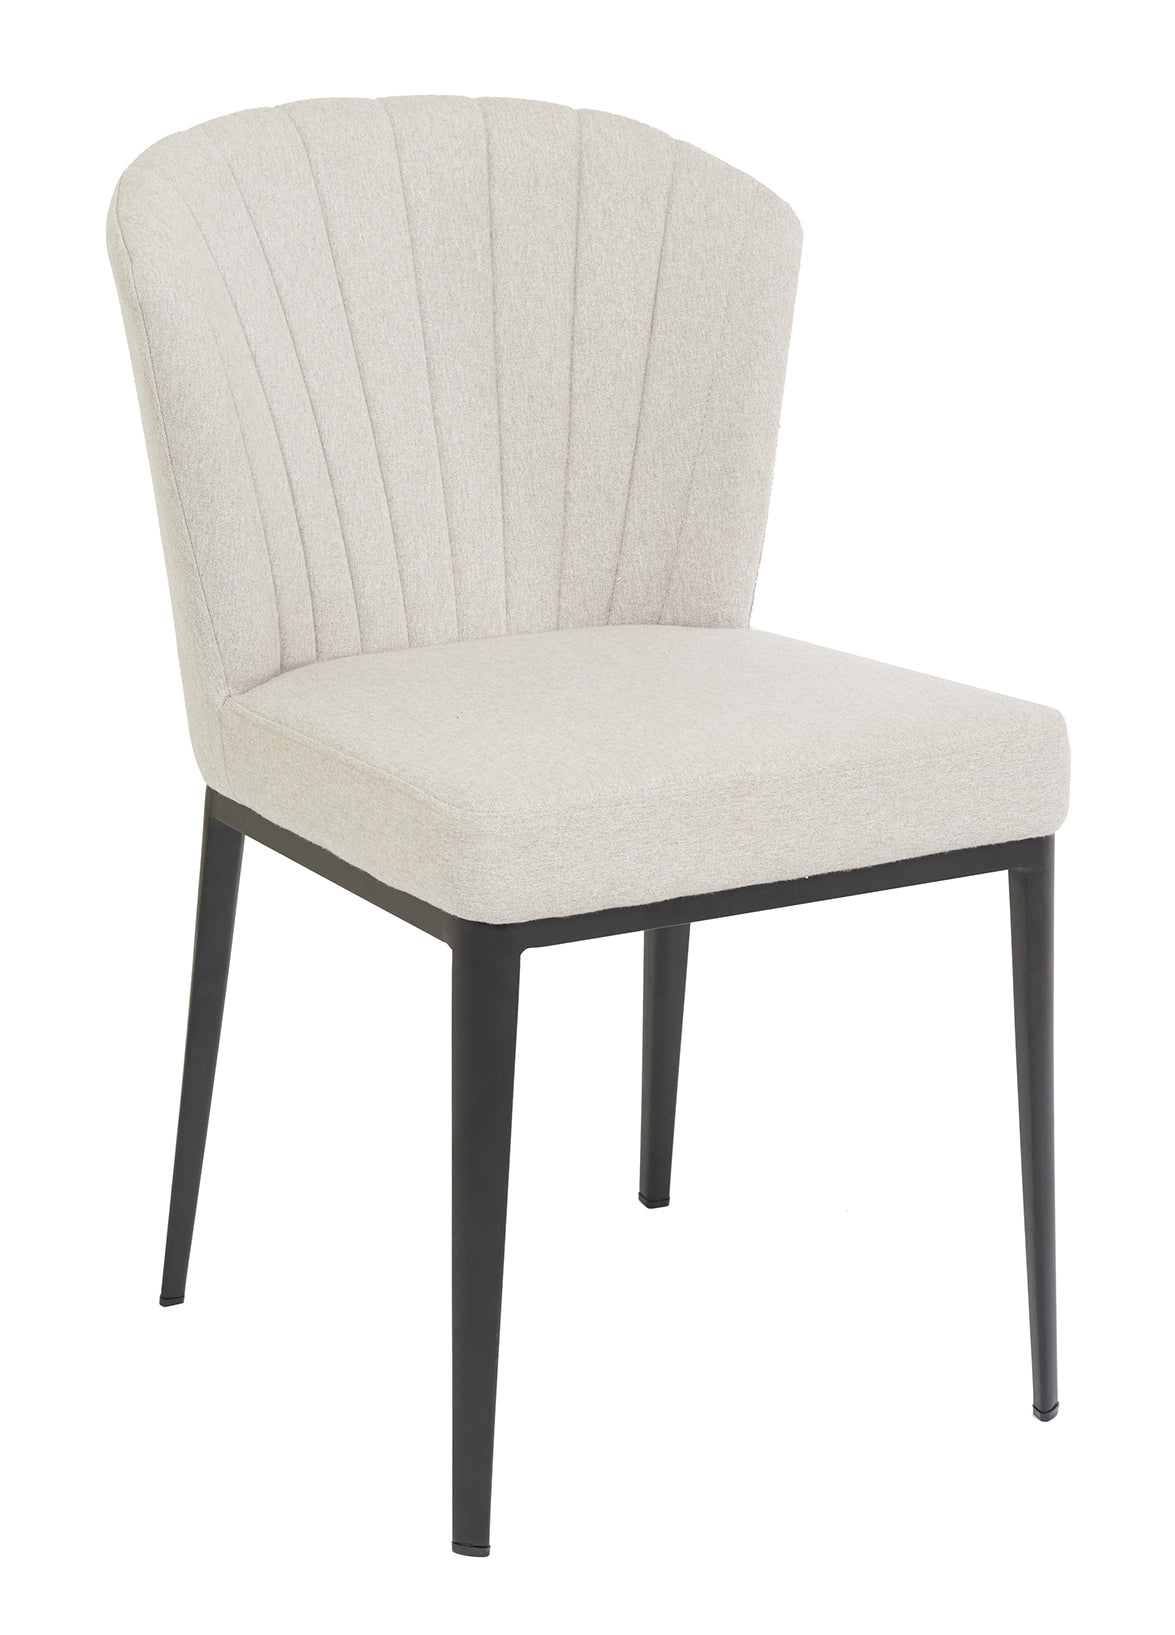 Sea Shell Dining Chair - Dove